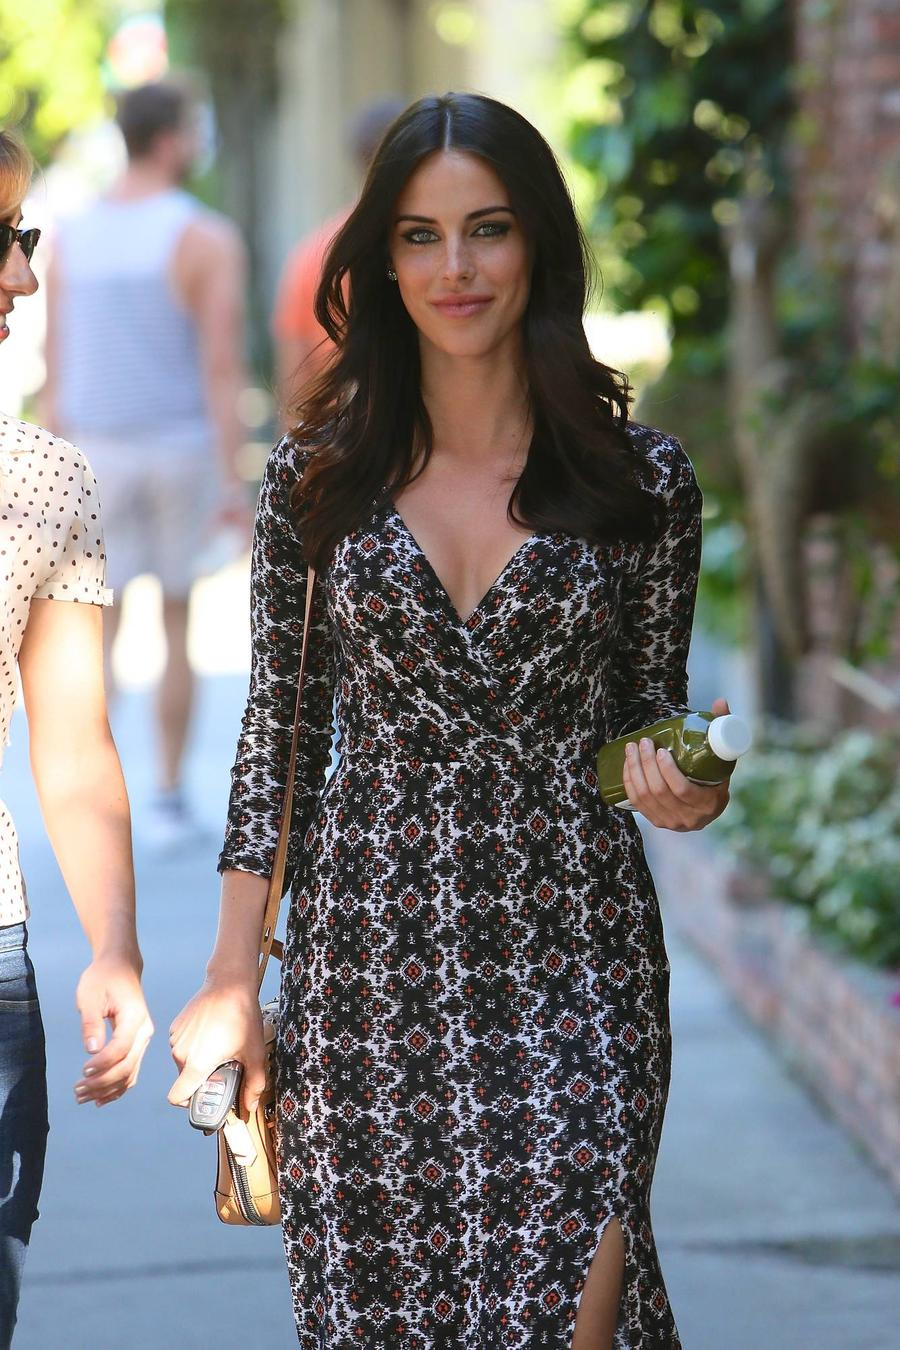 Jessica Lowndes' Relationship With Jon Lovitz Fake - Report